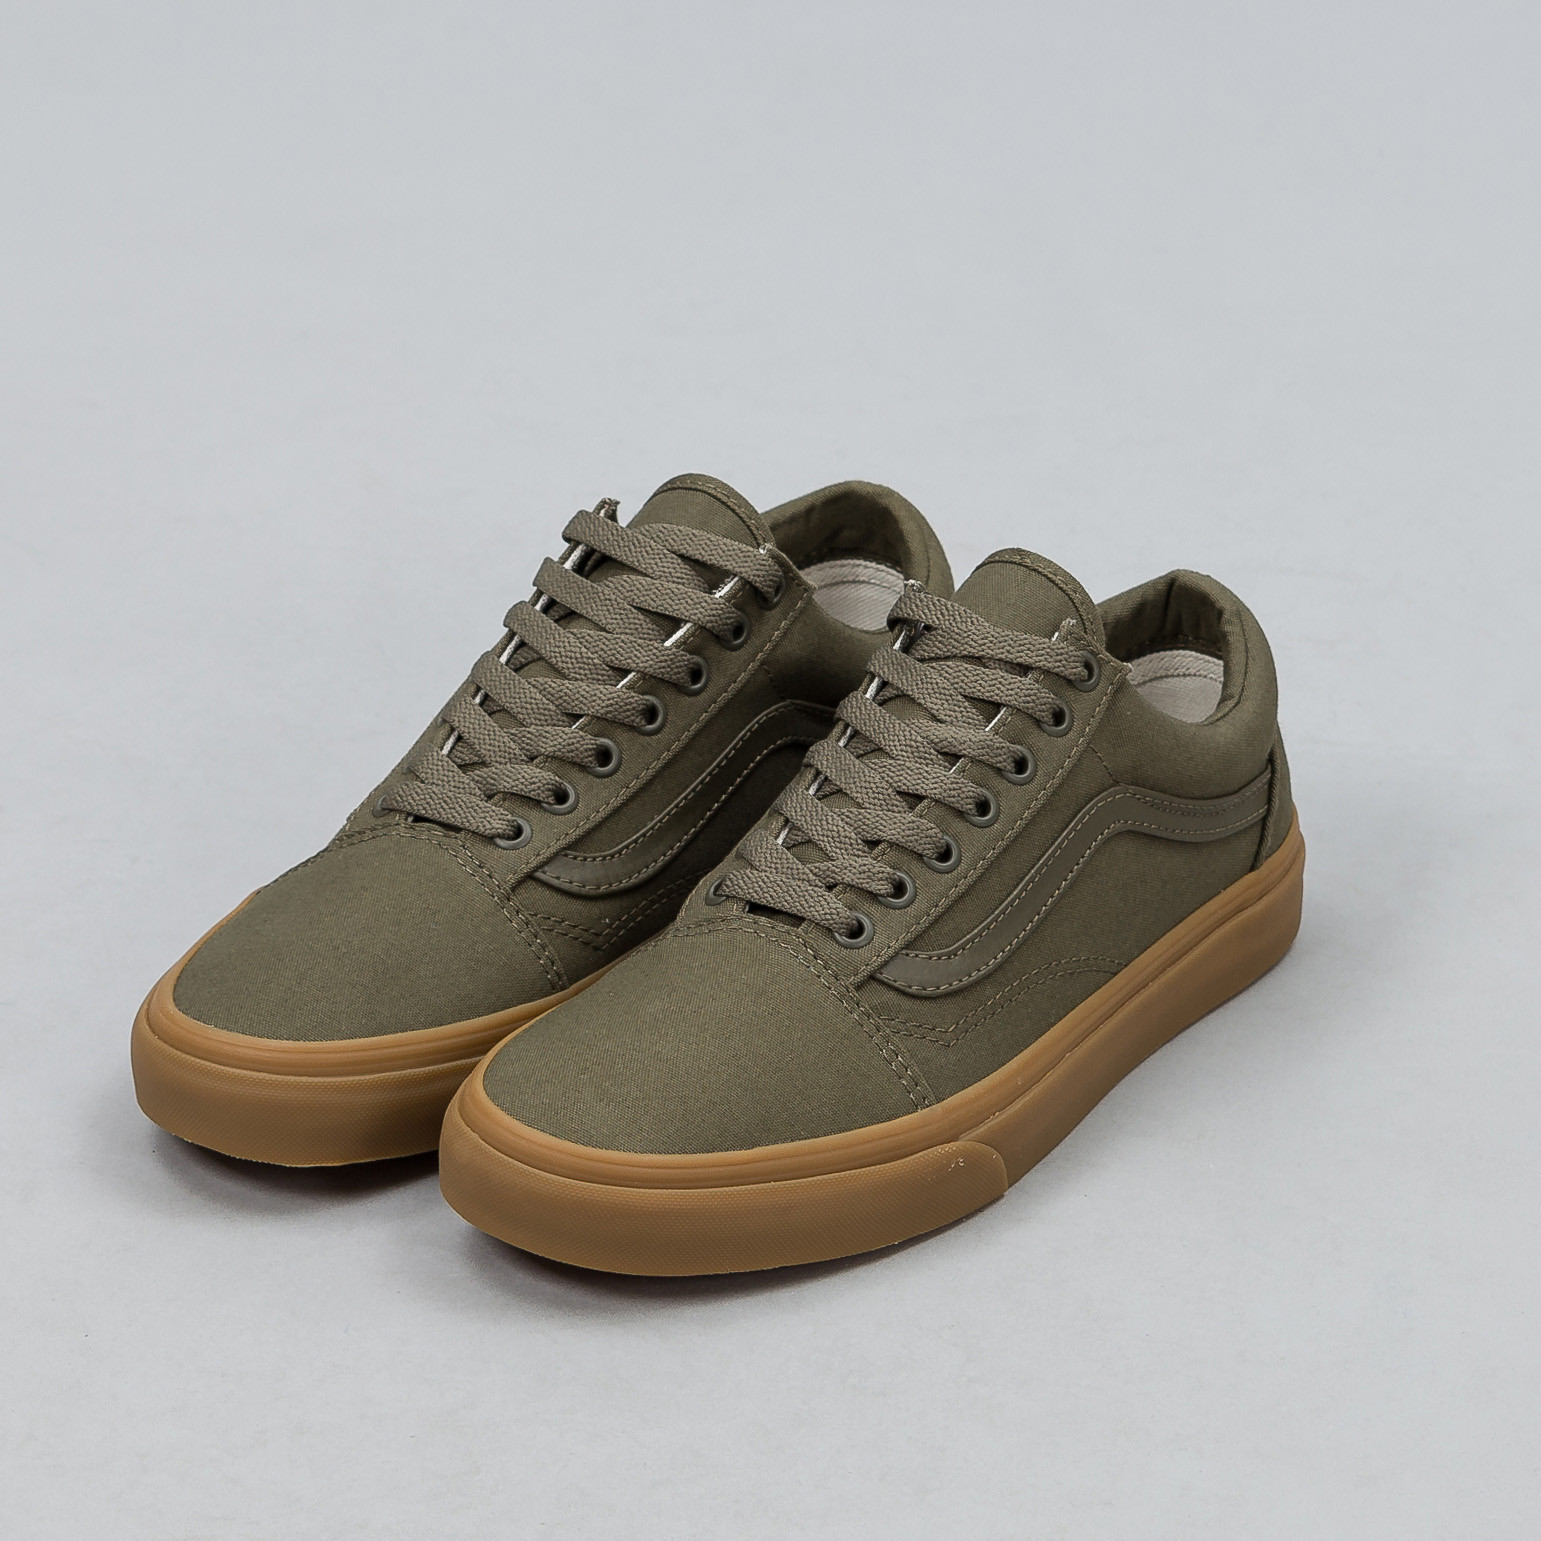 64efb6d0297 vans old skool men gum sole